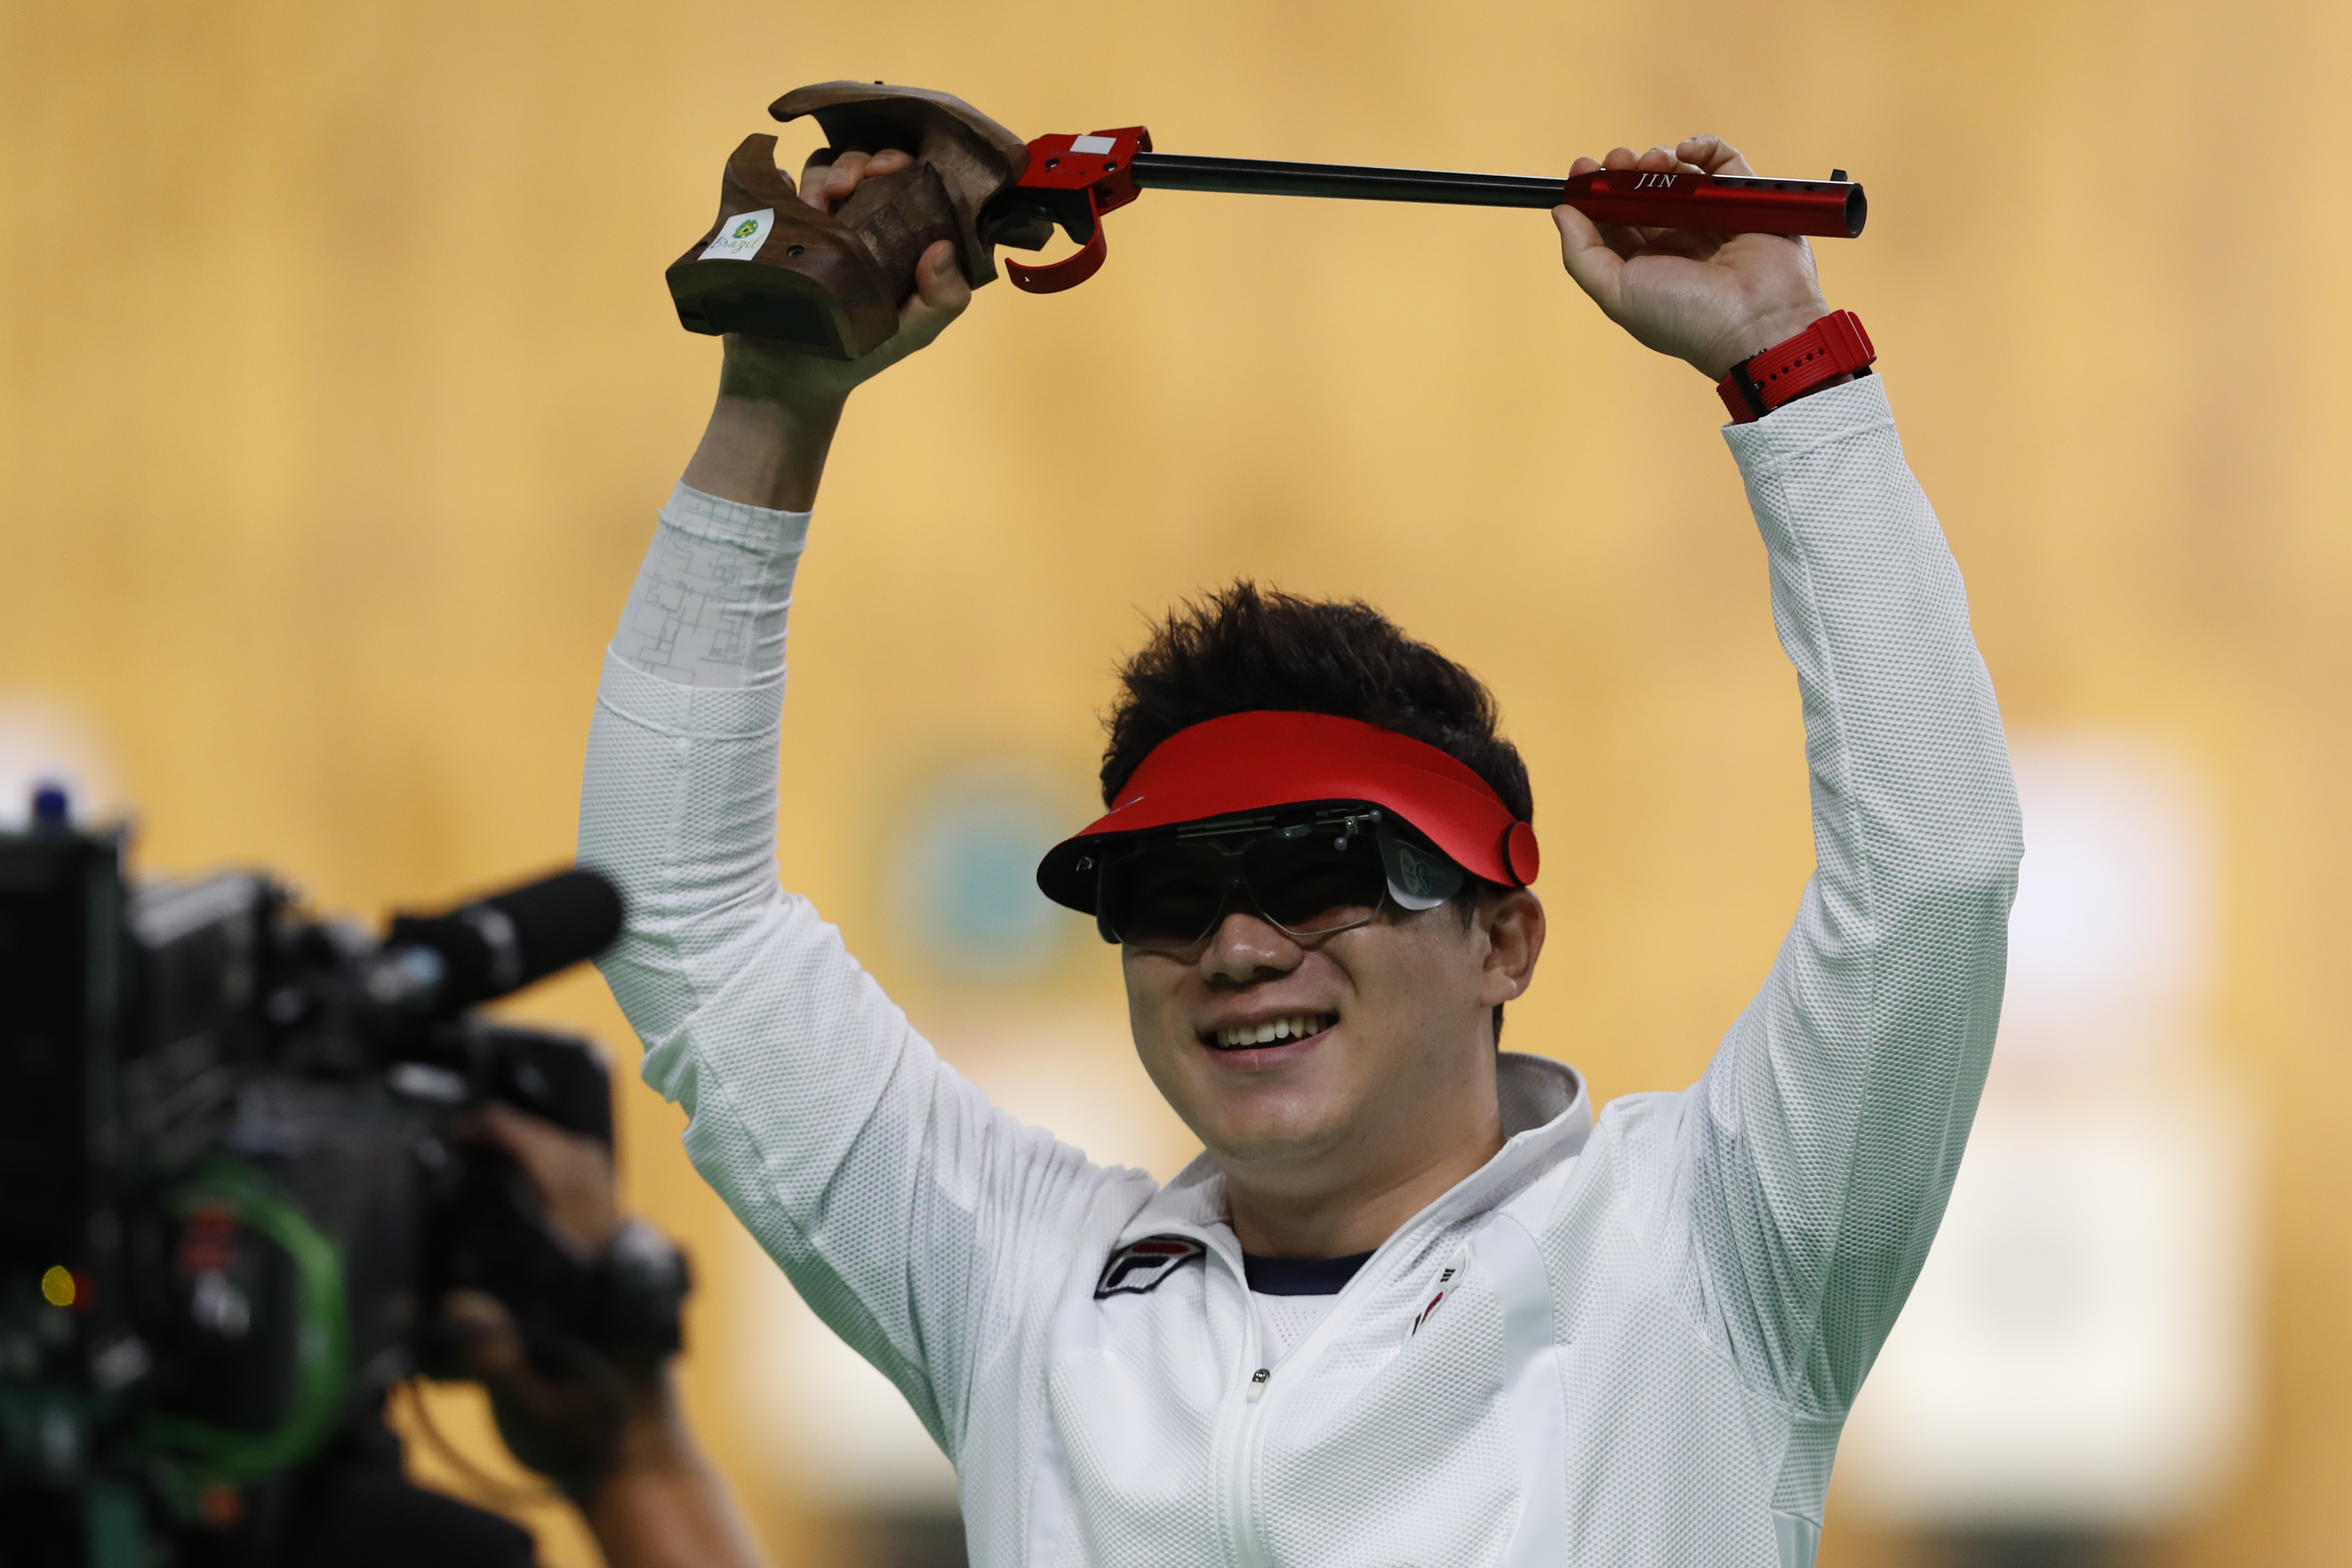 Jin Jong-oh, left, of South Korea celebrates winning a shootout to secure the gold medal during the men's 50-meter pistol final, at the Olympic Shooting Center at the 2016 Summer Olympics in Rio de Janeiro, Brazil, Wednesday, Aug. 10, 2016. (AP Photo/Hass